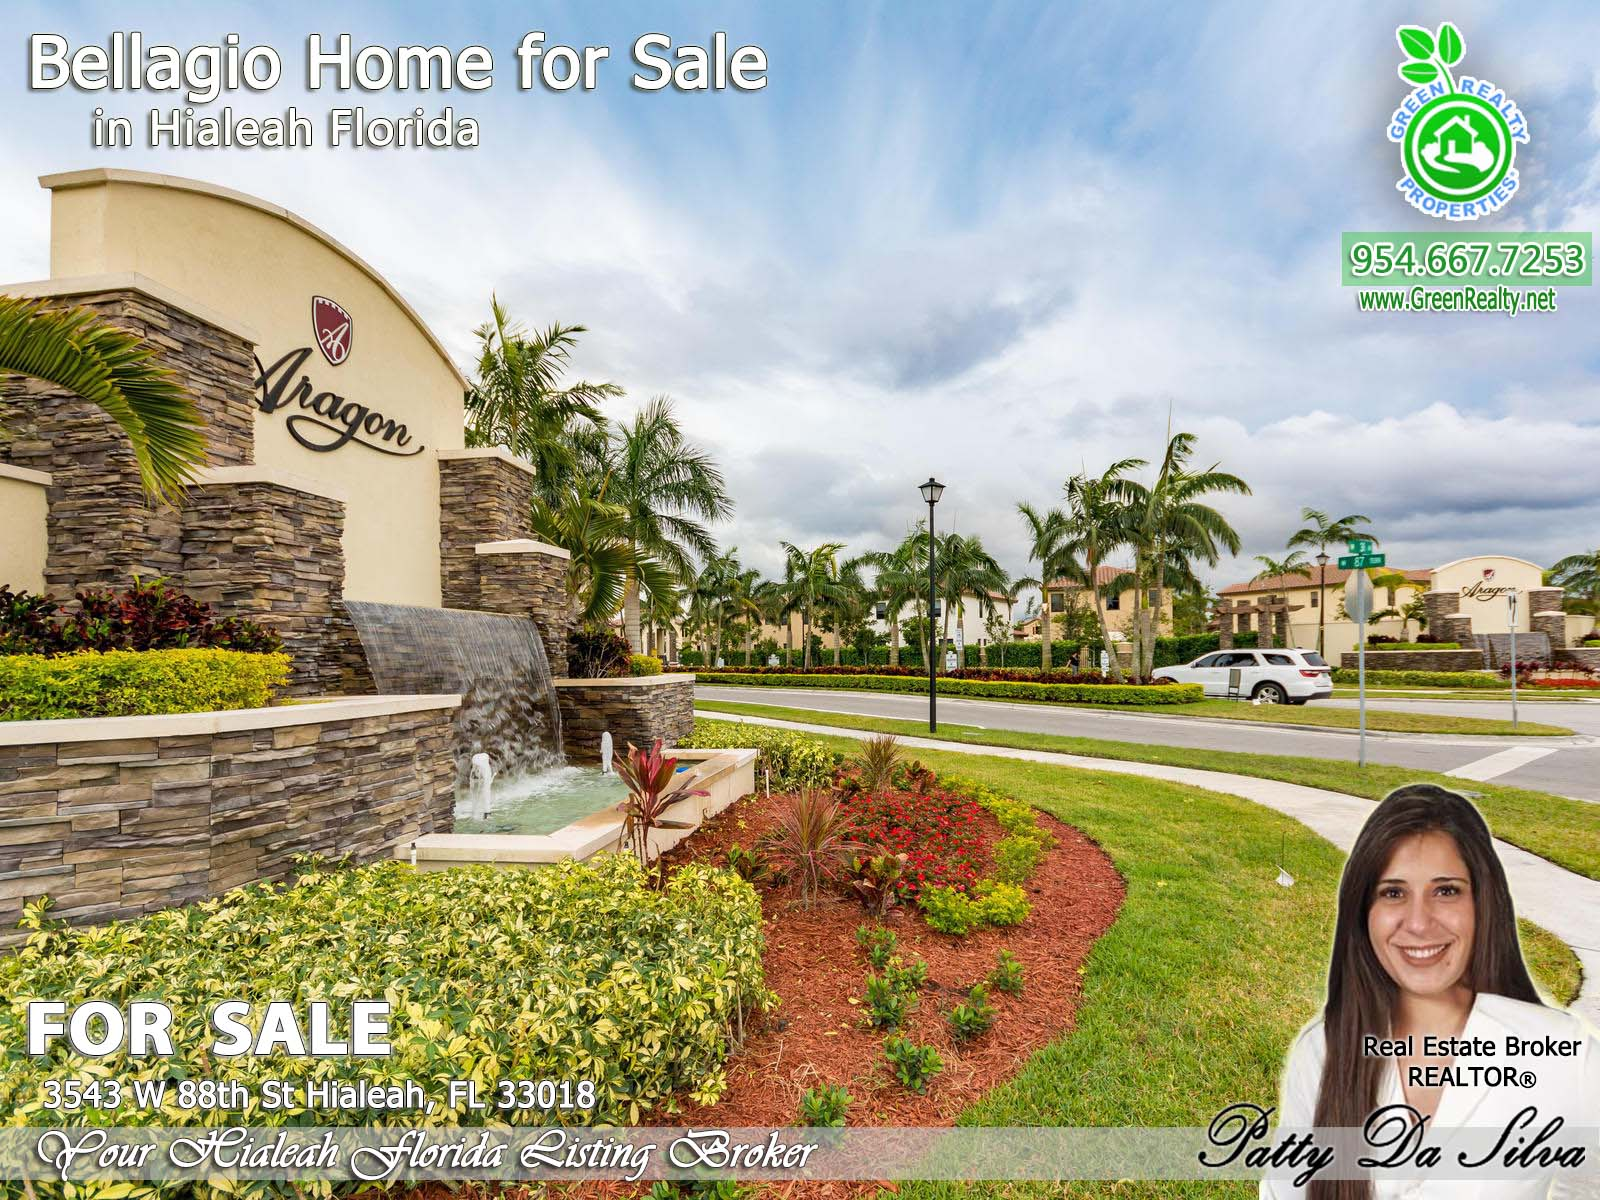 South florida homes for sale by broker Patty da silva of green realty properties (16)